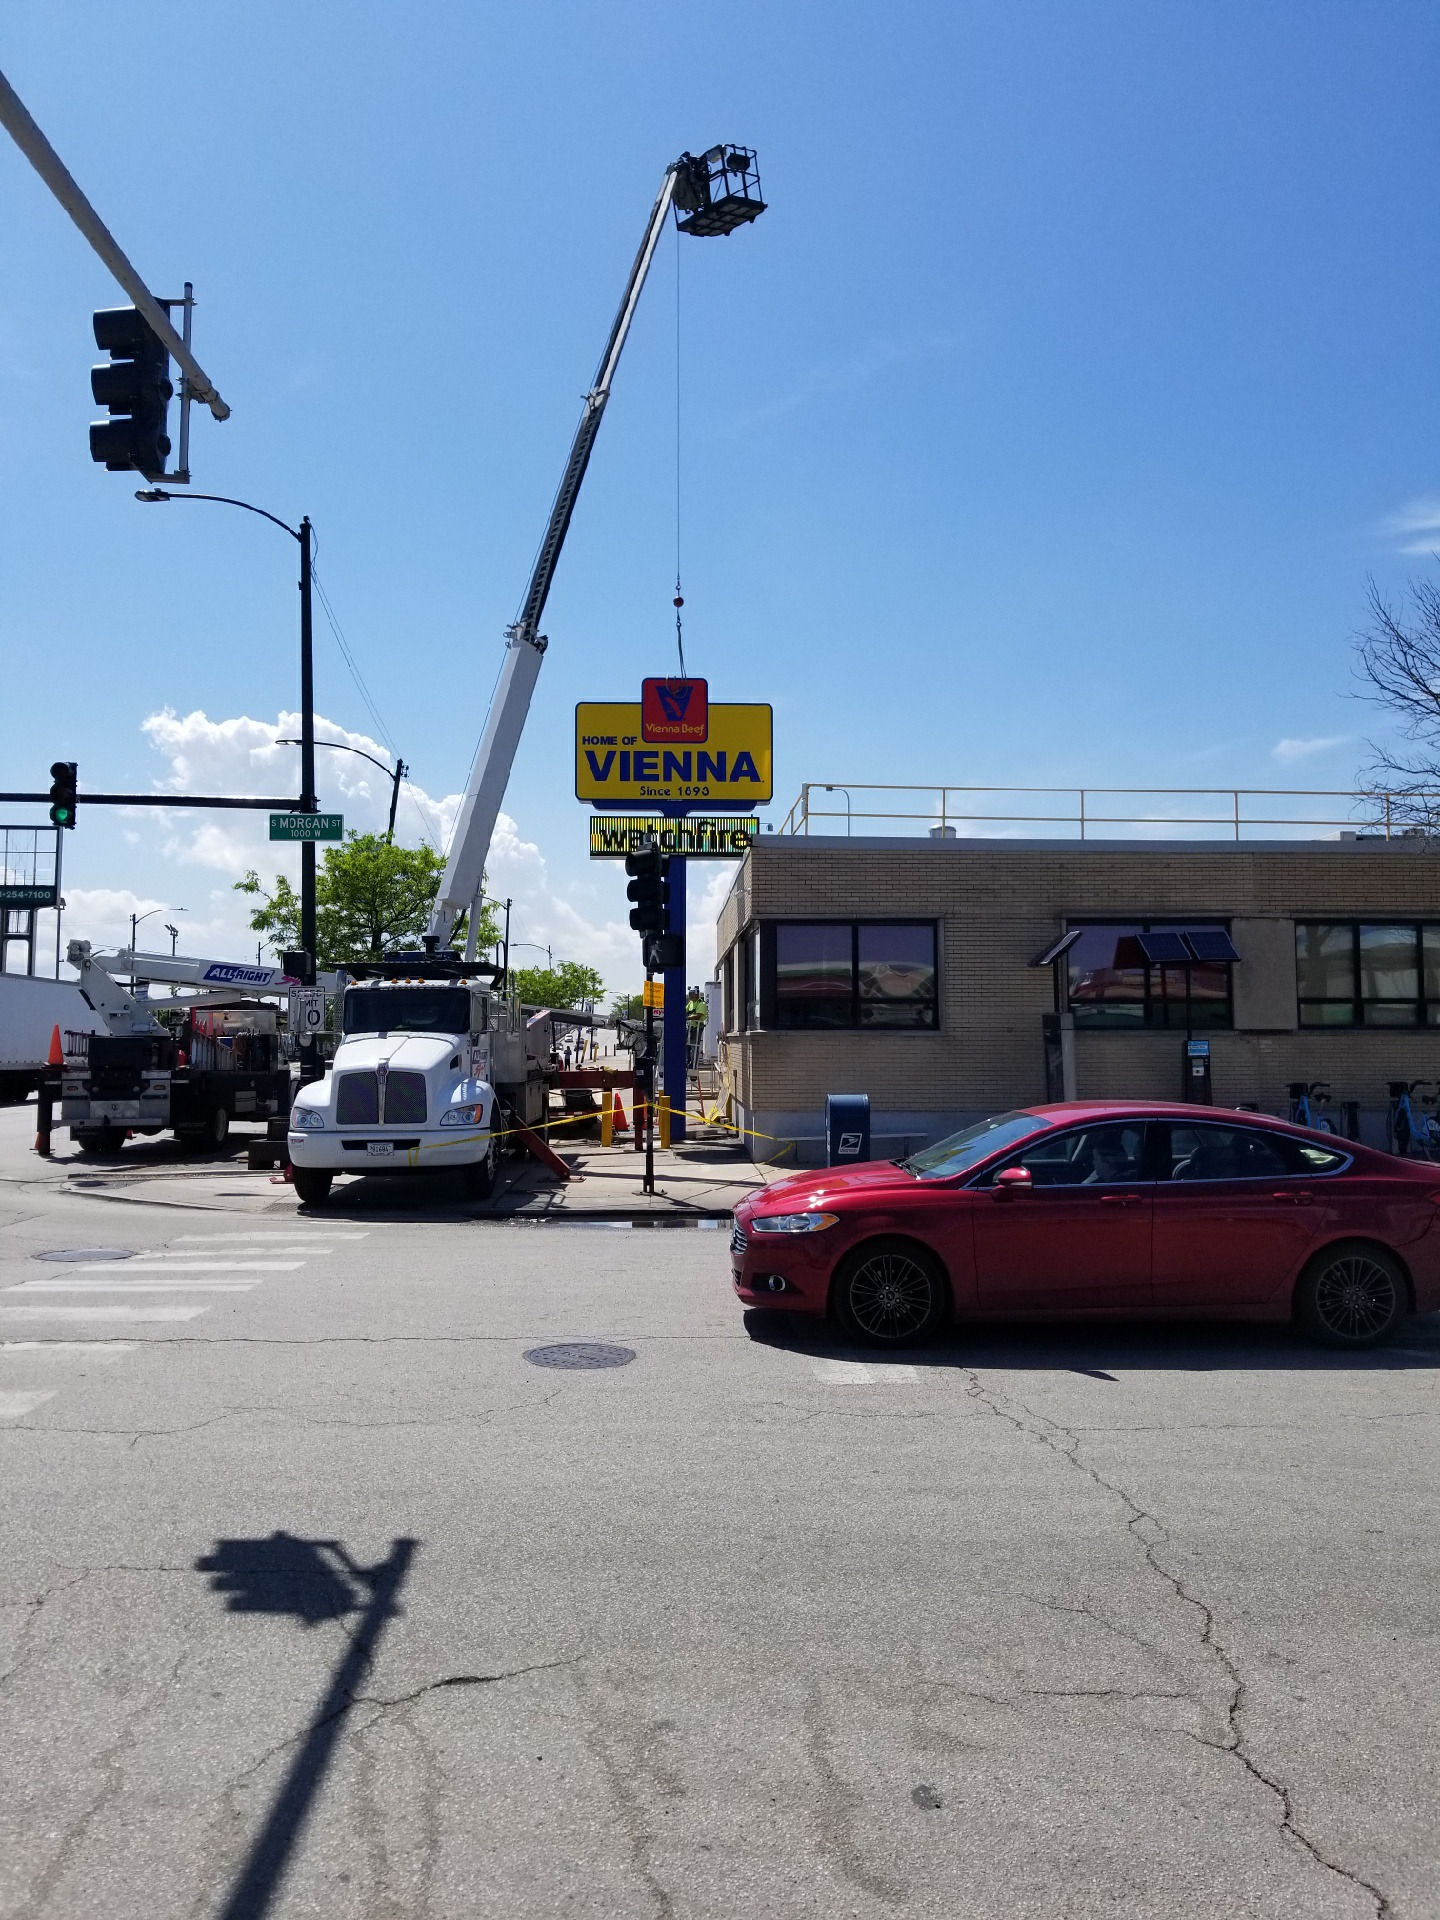 Large picture of a street where a business is getting a new bright yellow sign installed, representing how one can benefit from calling a Merrillville sign installation company.